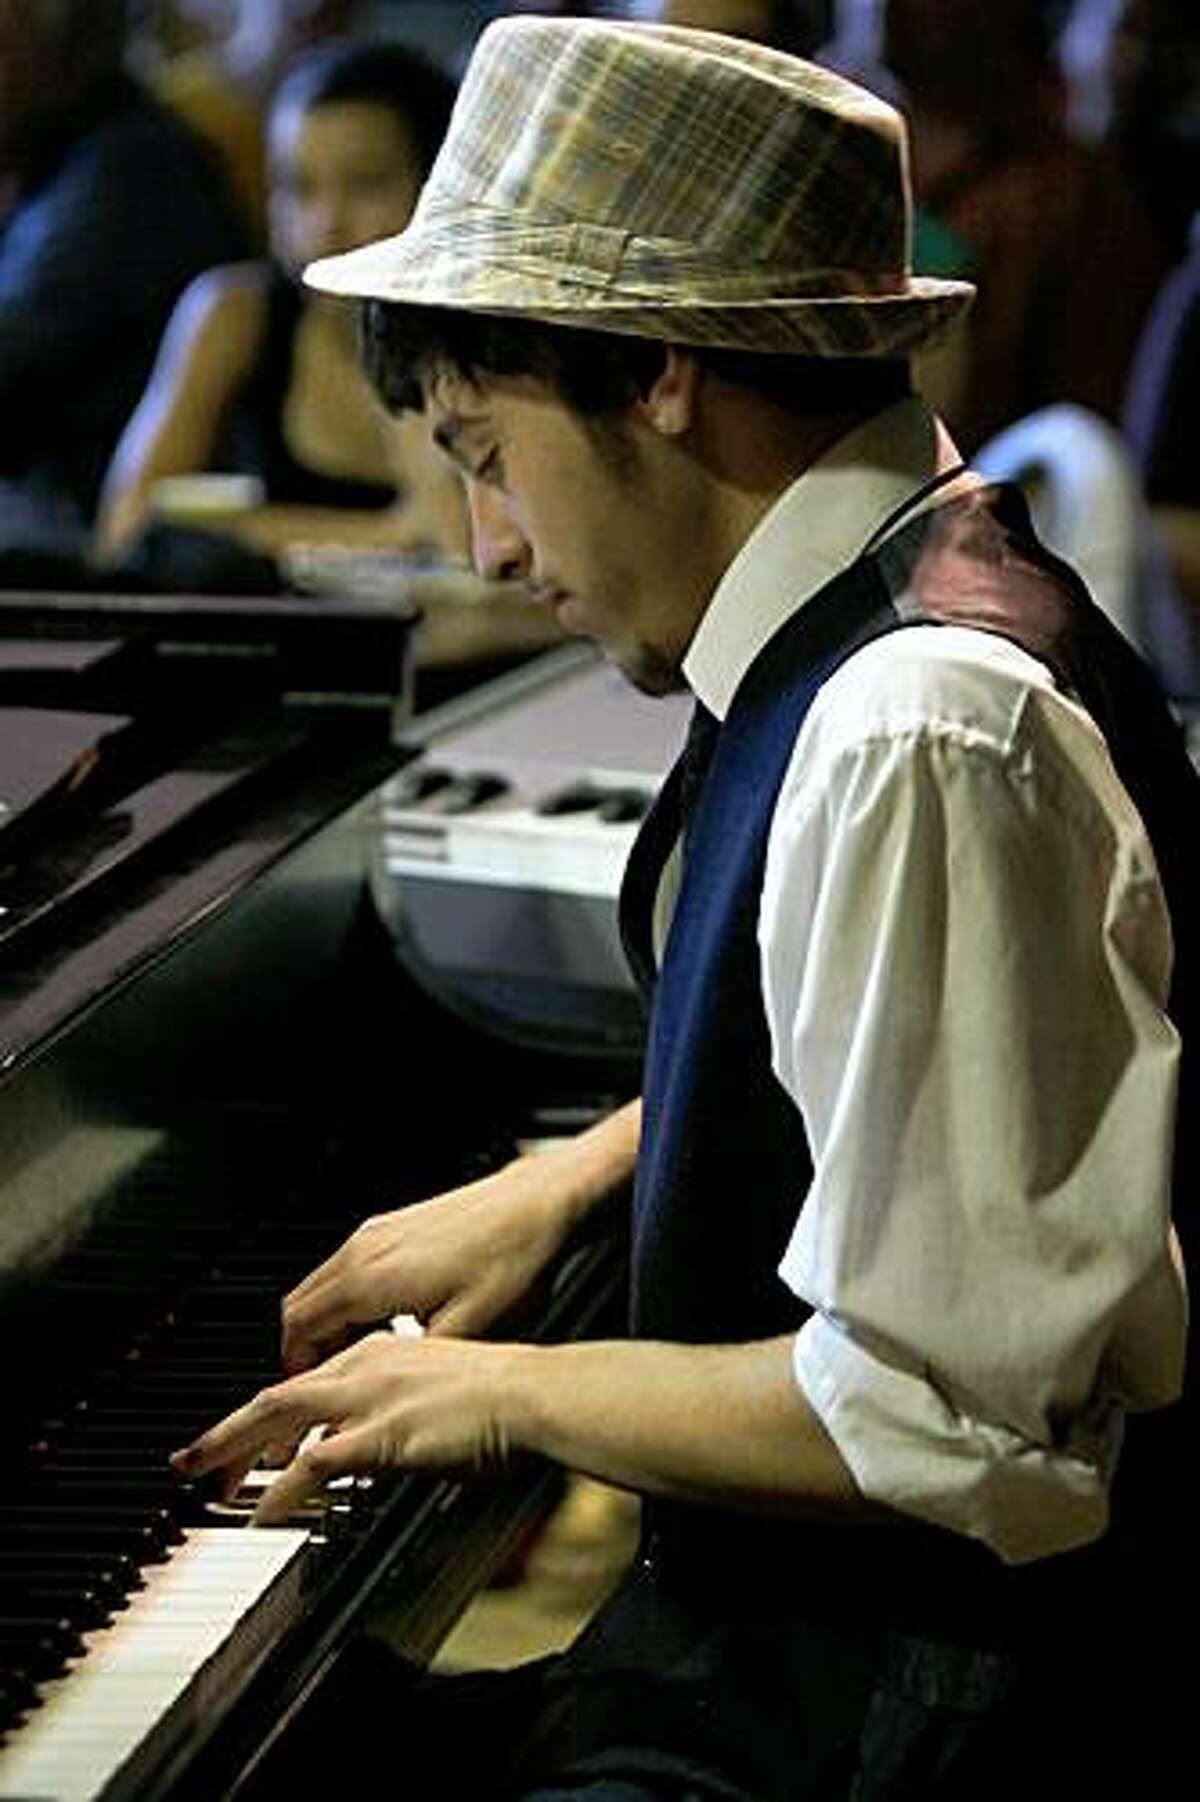 Samora Pinderhughes, a piano student at The Jazzschool in Berkeley.